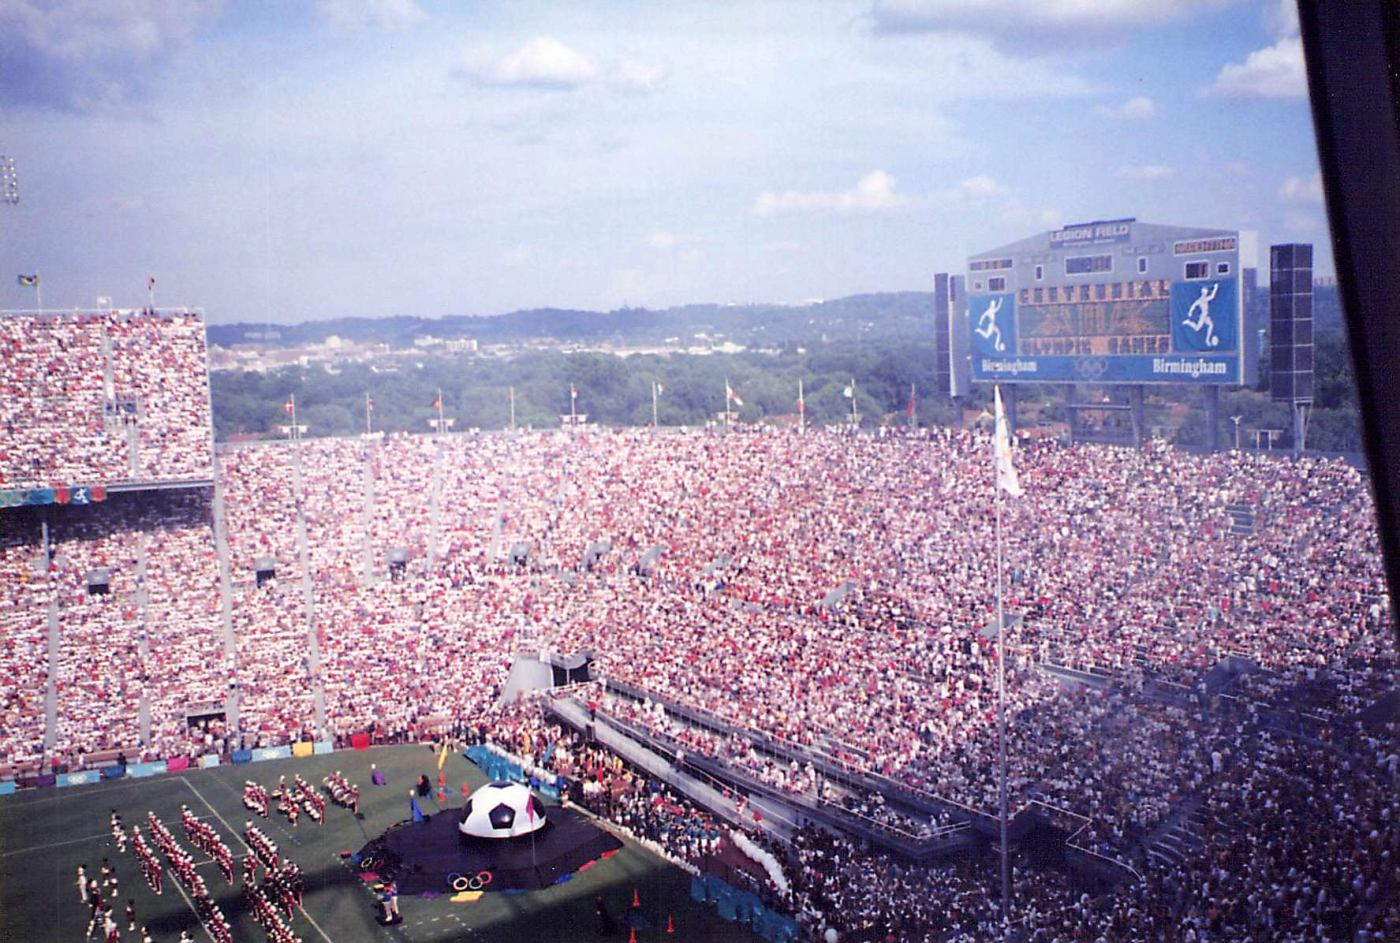 Legion Field packed during 1996 Olympics